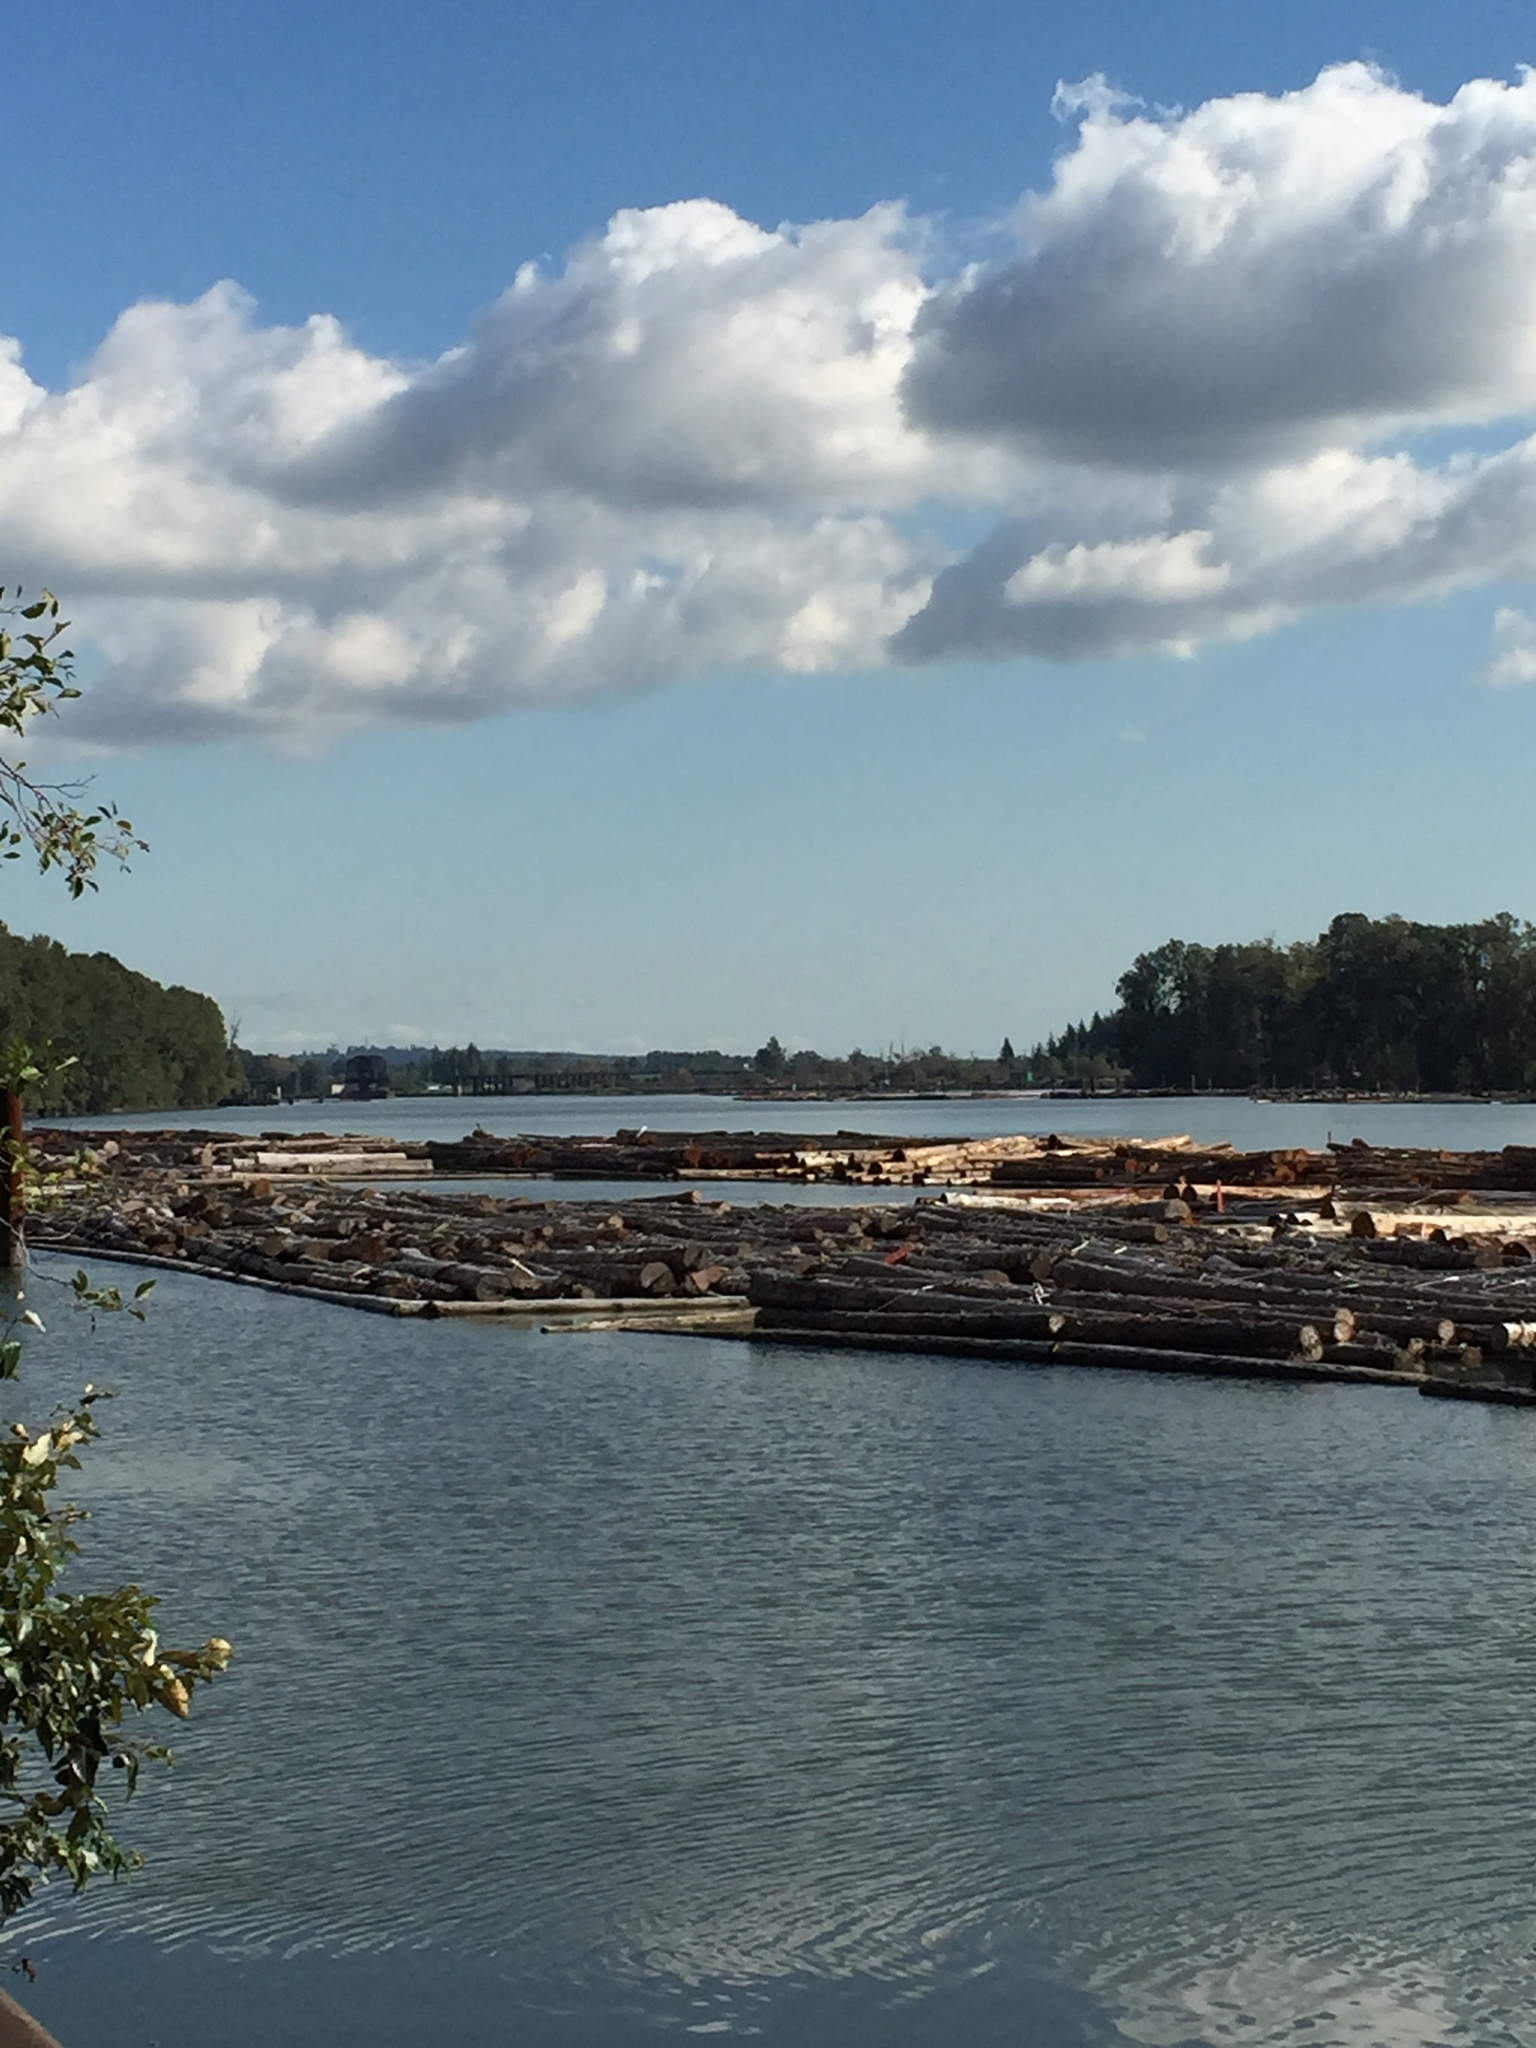 Fraser River logs by Peanut